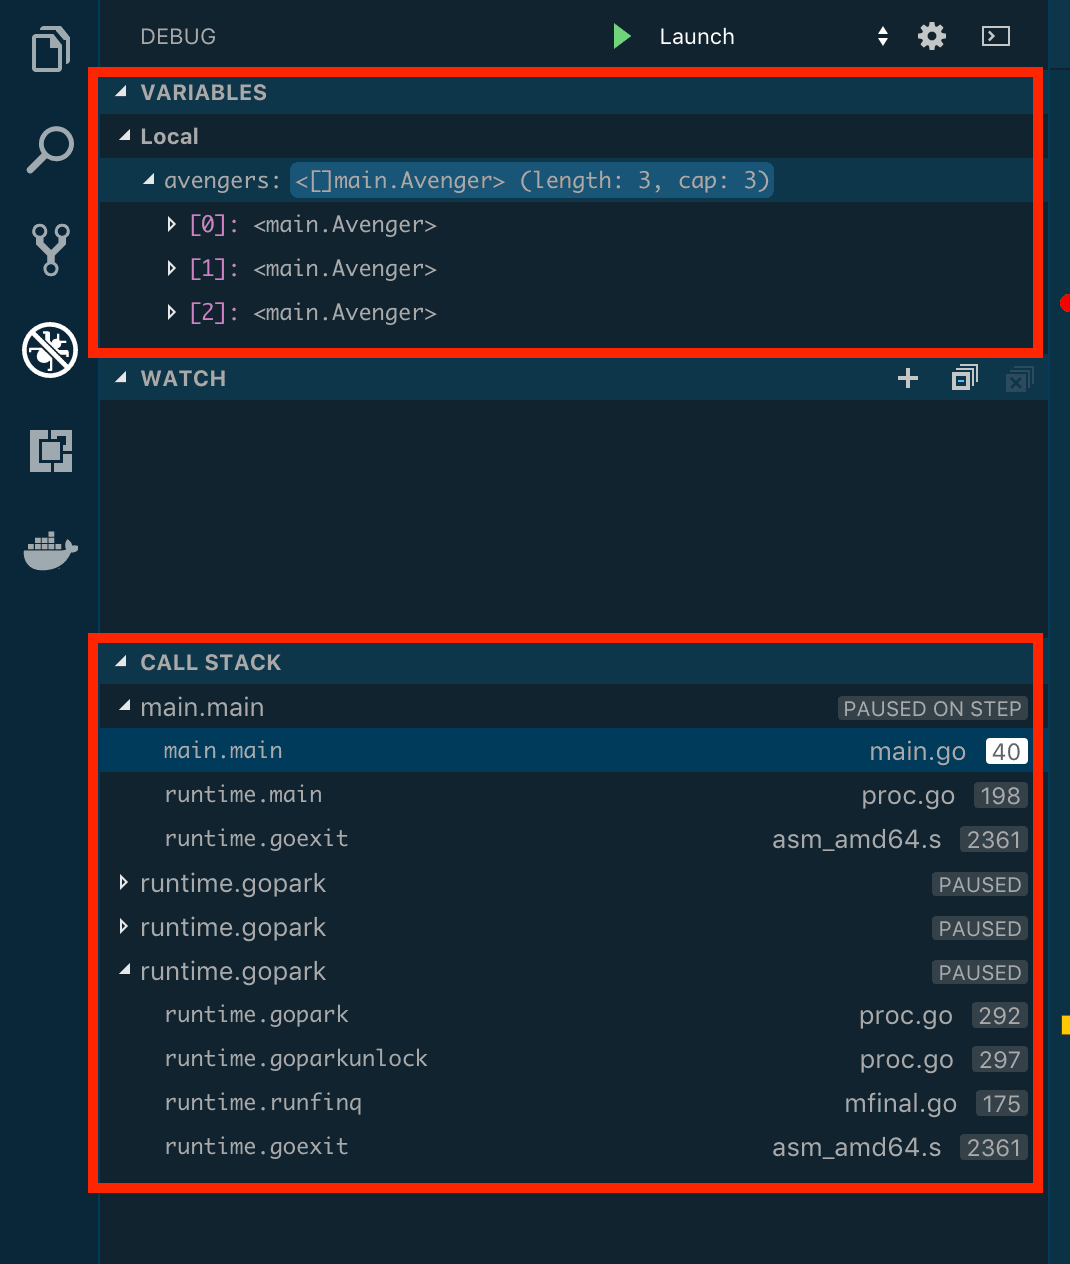 Debug section showing breakpoint state